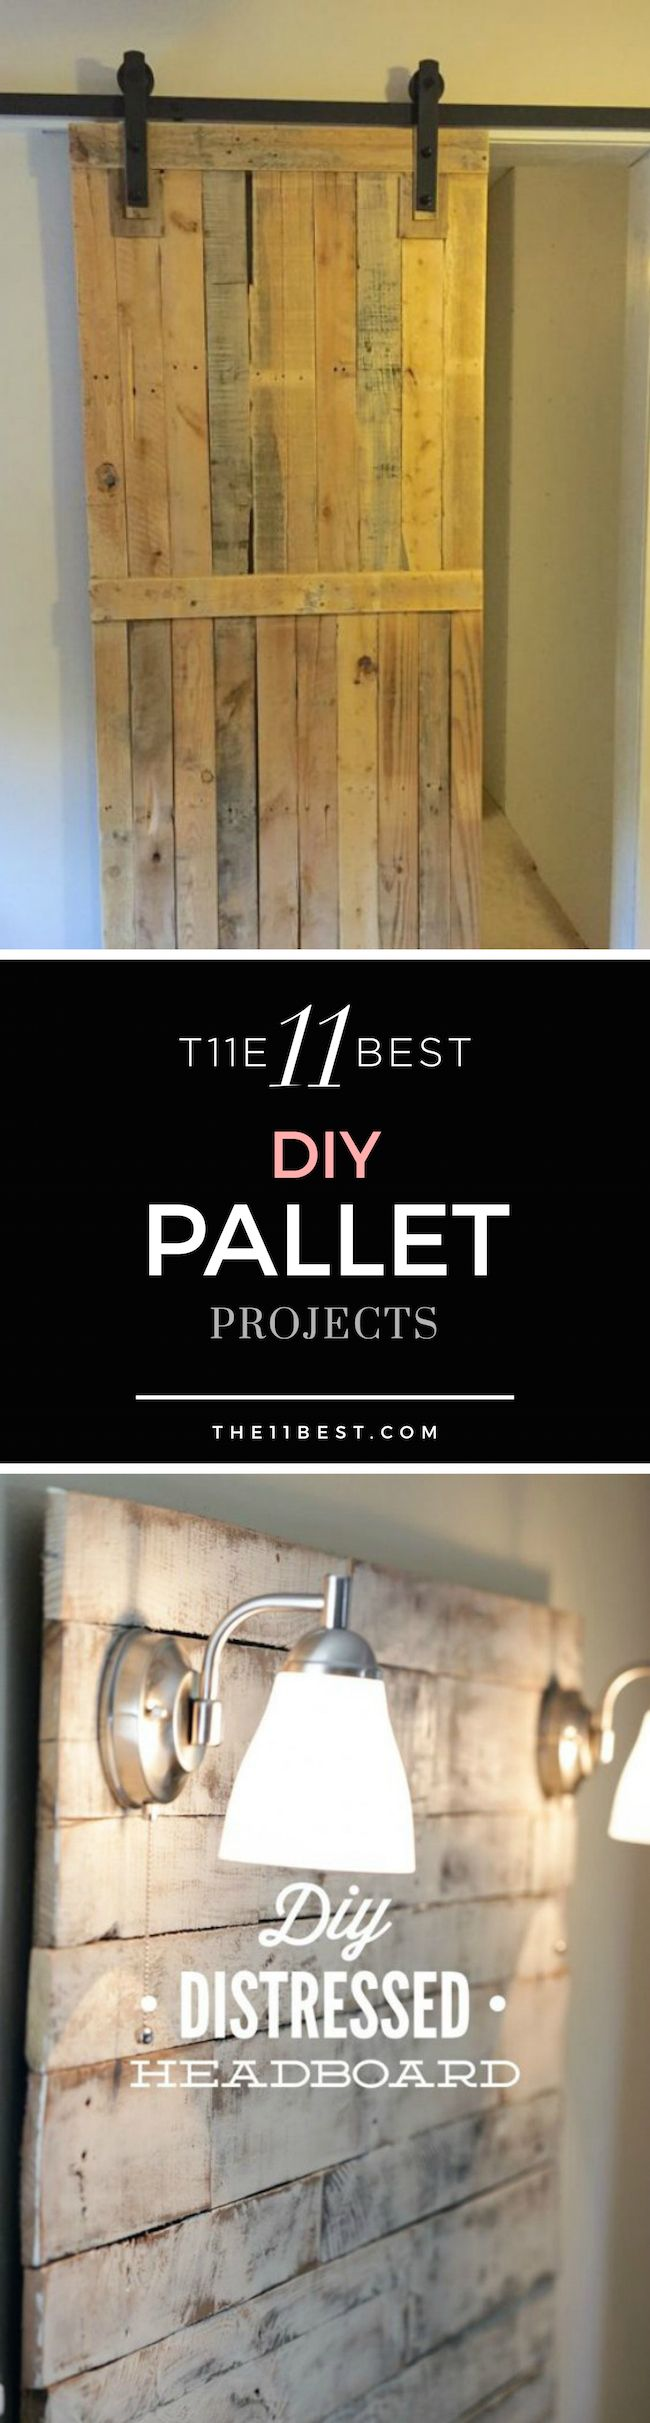 The 11 Best Pallet Projects